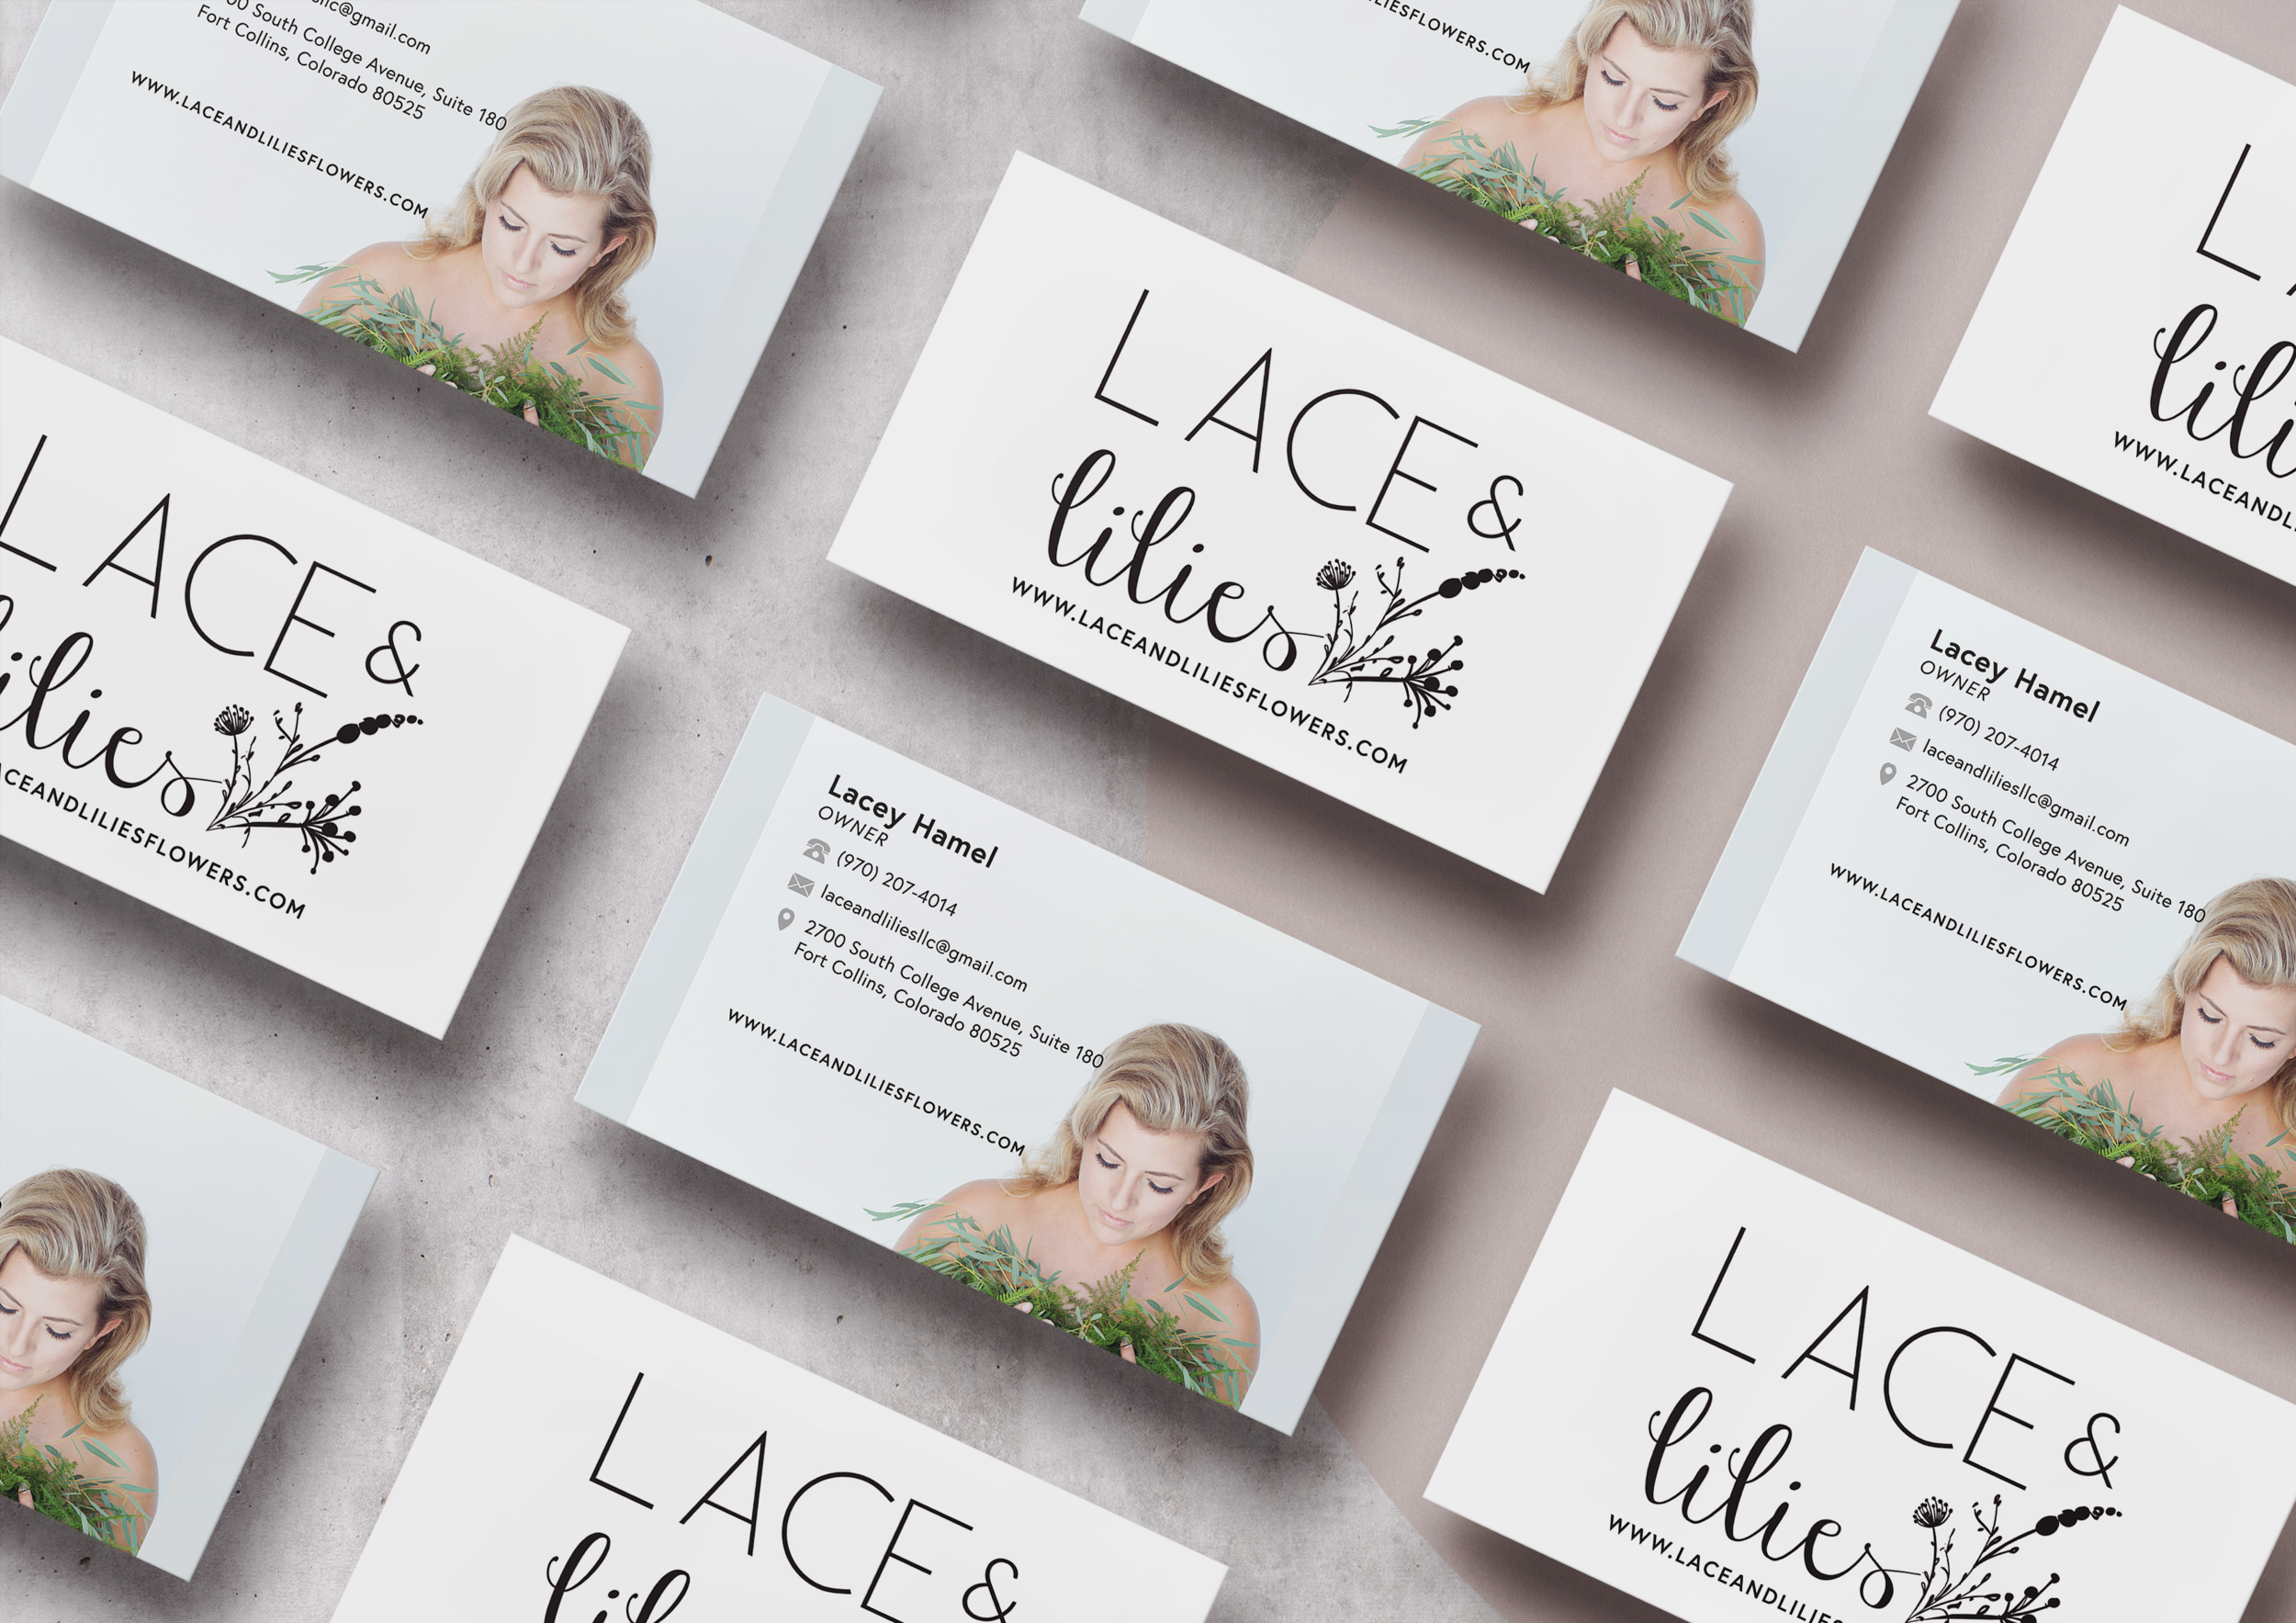 Lace and LIlies Business card design Printed on moo.com luxe paper